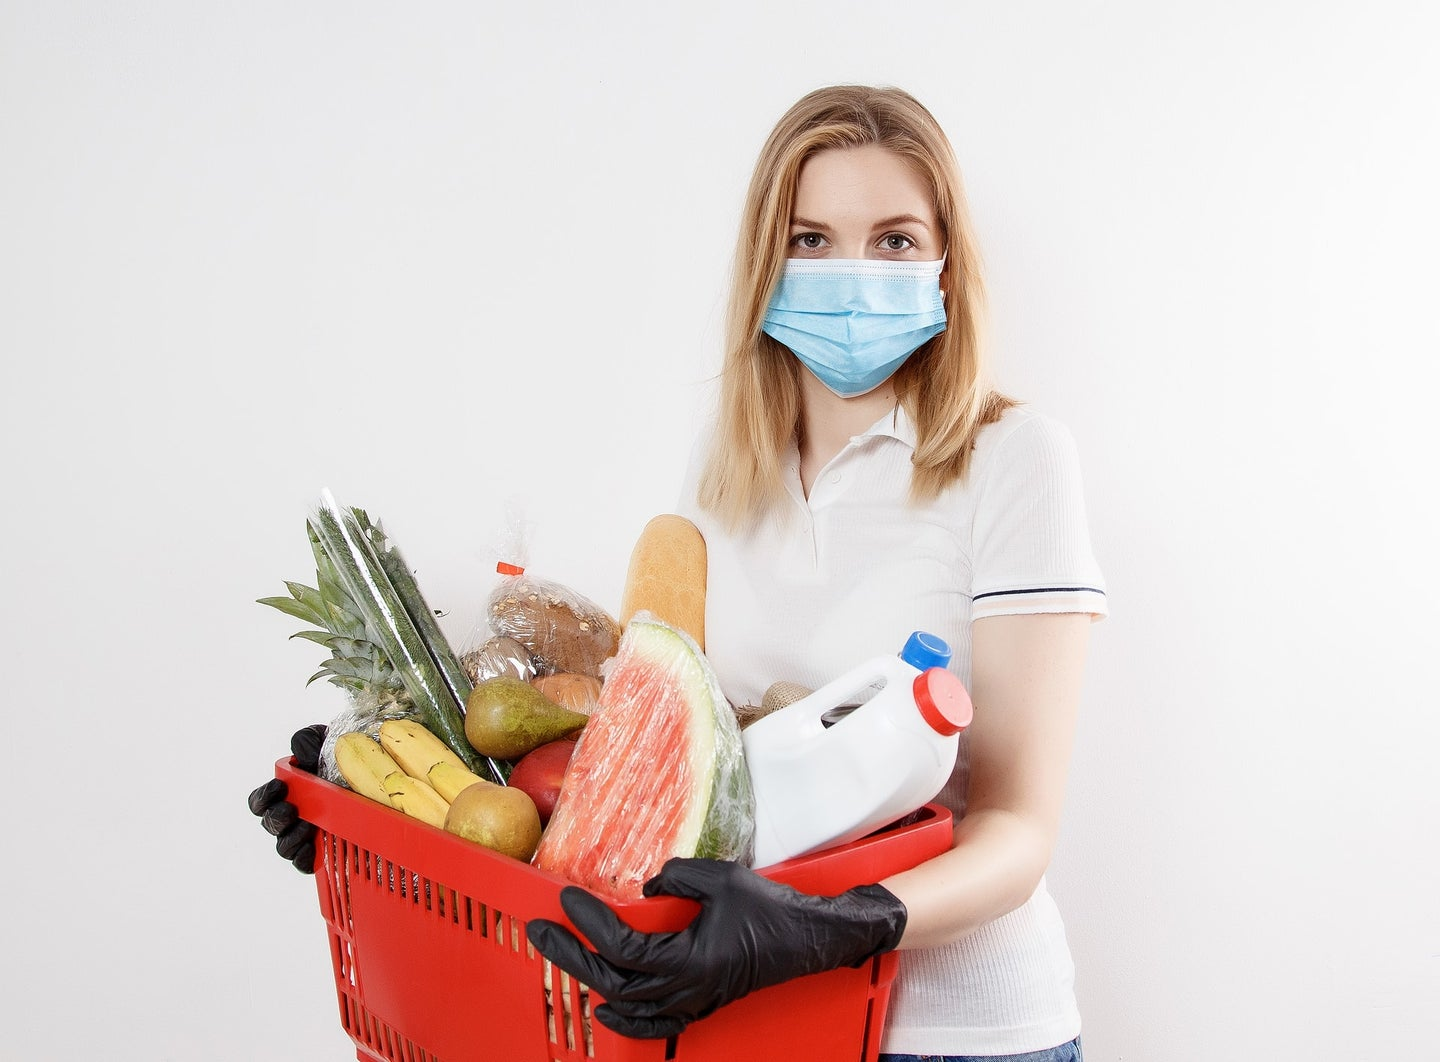 Person in a mask and disposable gloves holding a basket of groceries